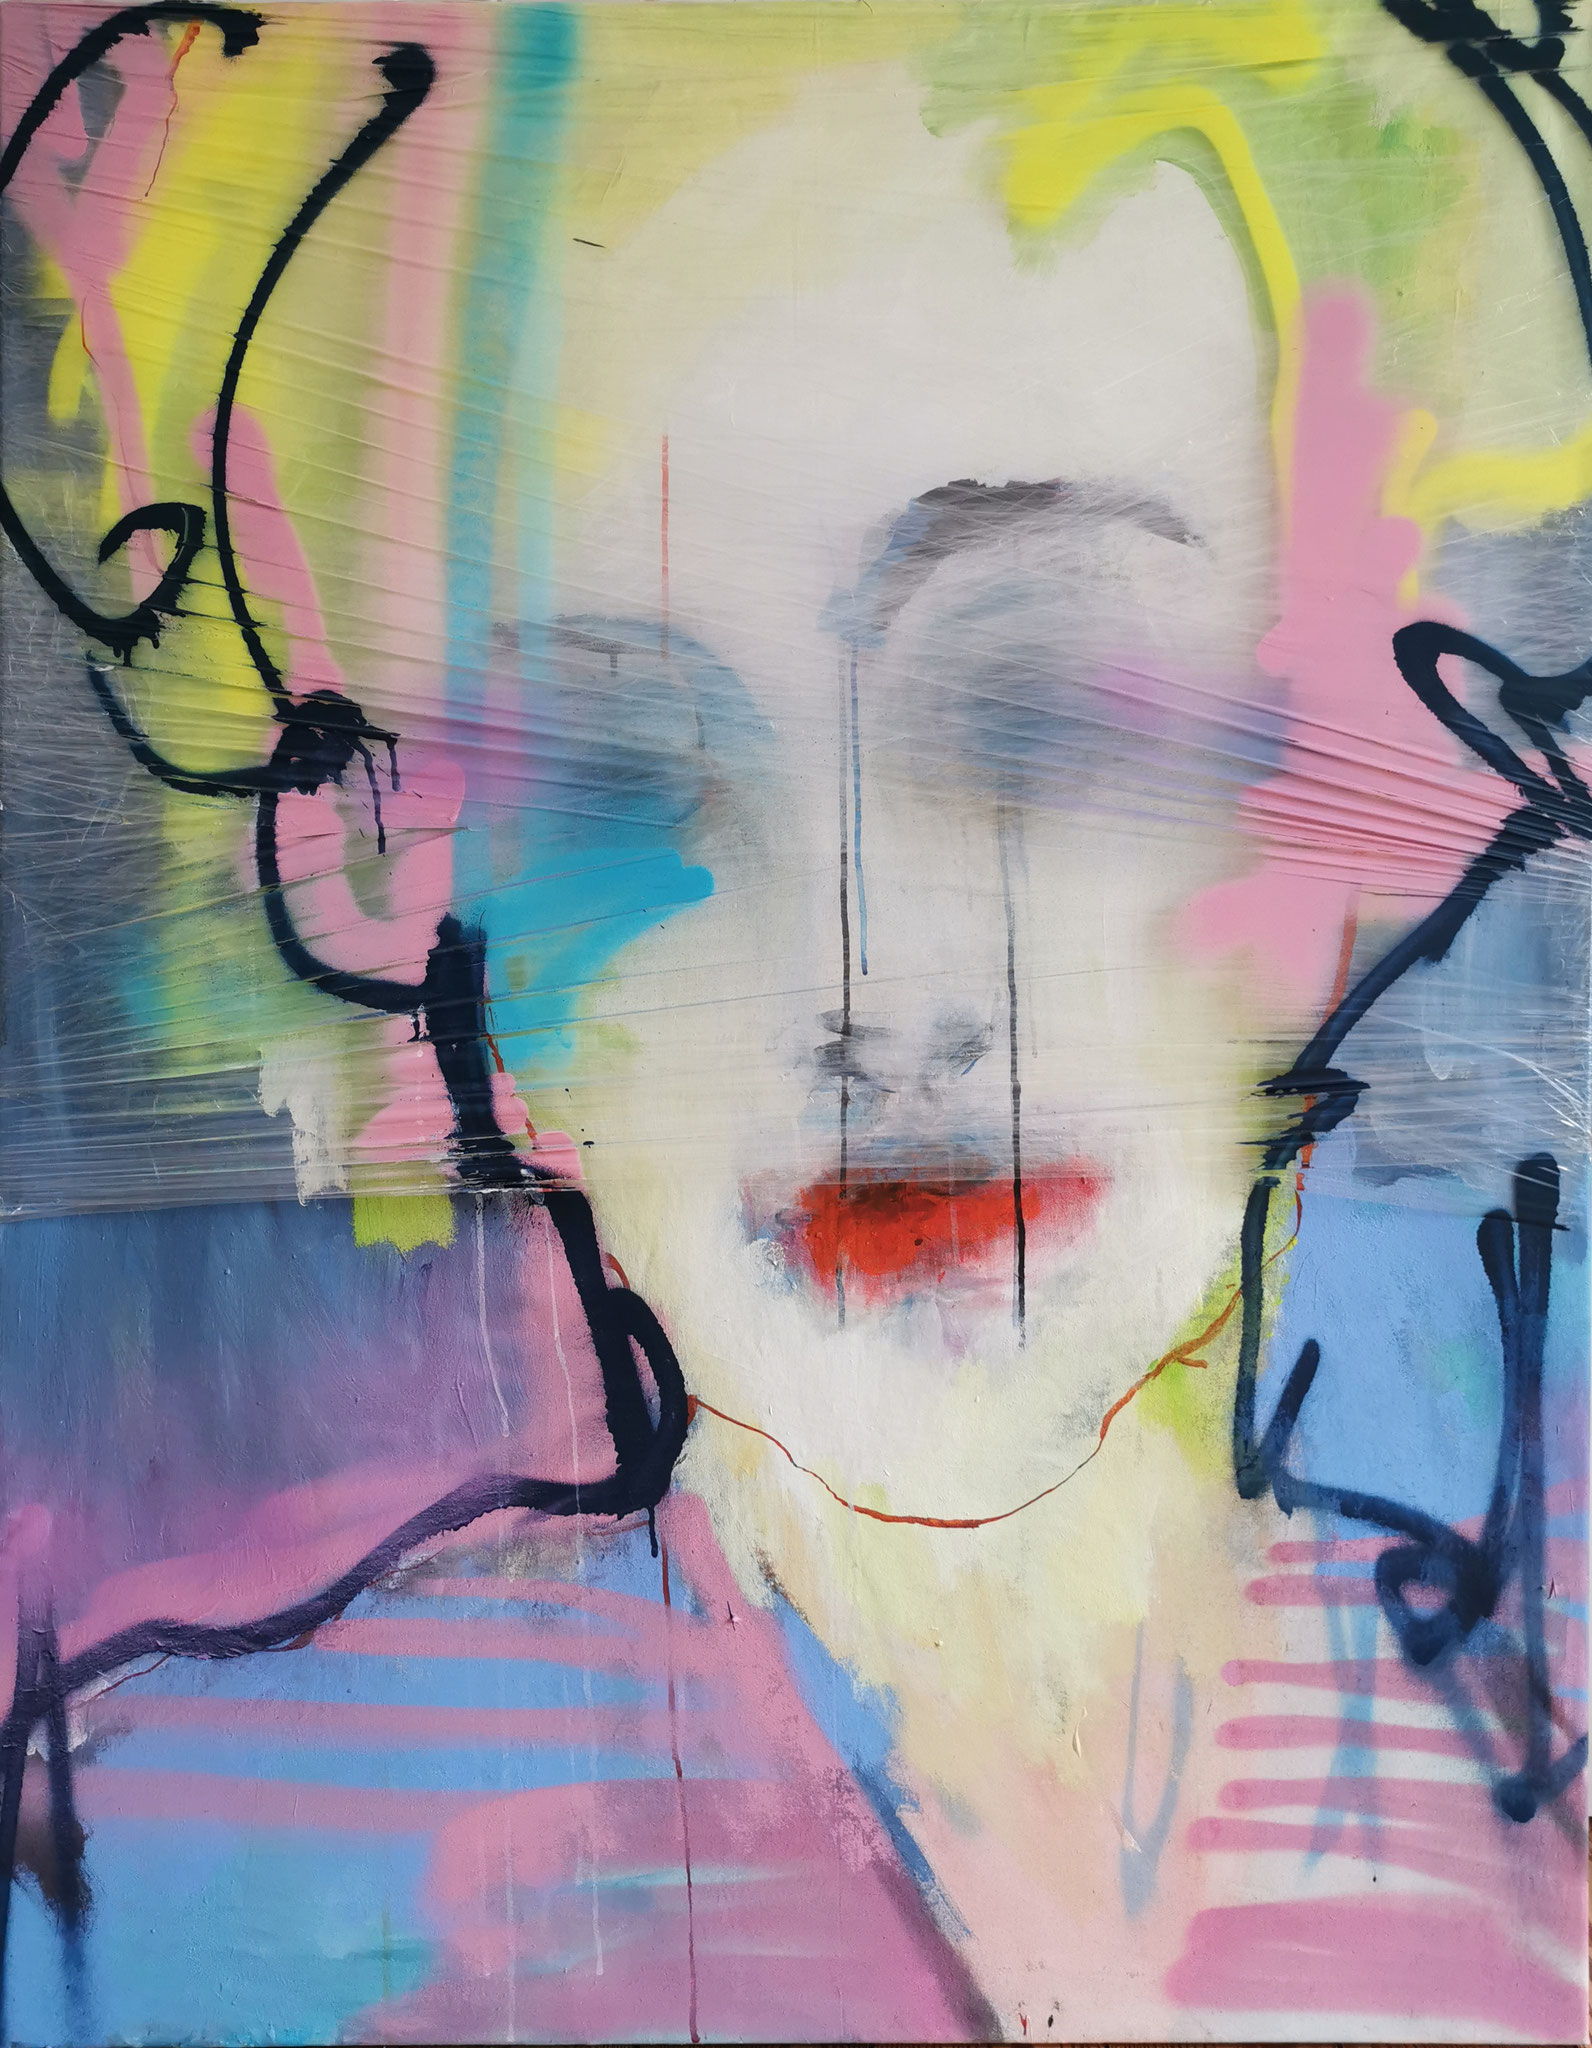 self-portrait (Acrylic, Plastic, Spray Paint, Graphite, Ink, Pastels on Plastic and Canvas , 130x100cm)